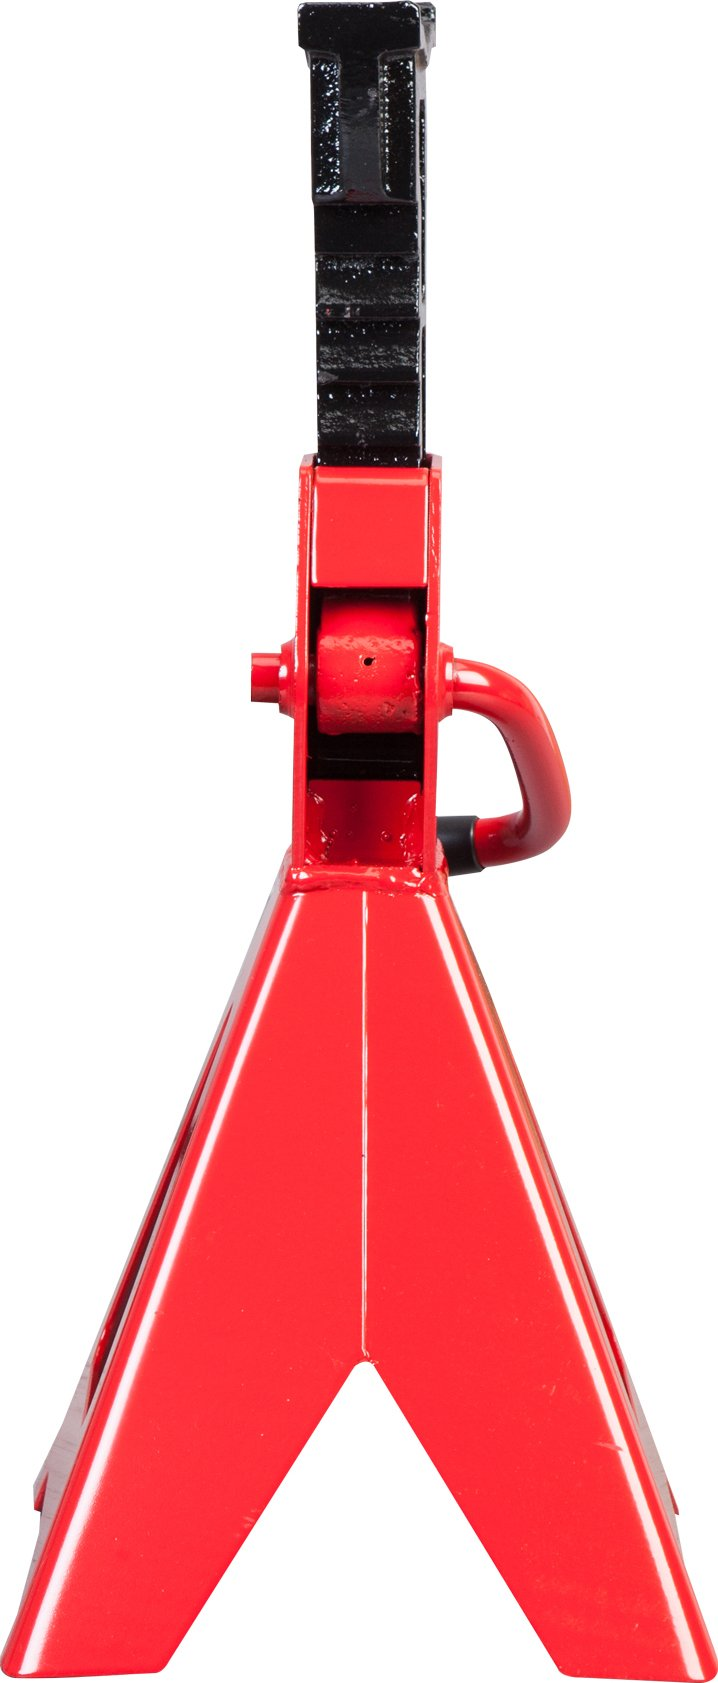 Torin Big Red Steel Jack Stand: 6 Ton Capacity, Single Jack by Torin (Image #15)